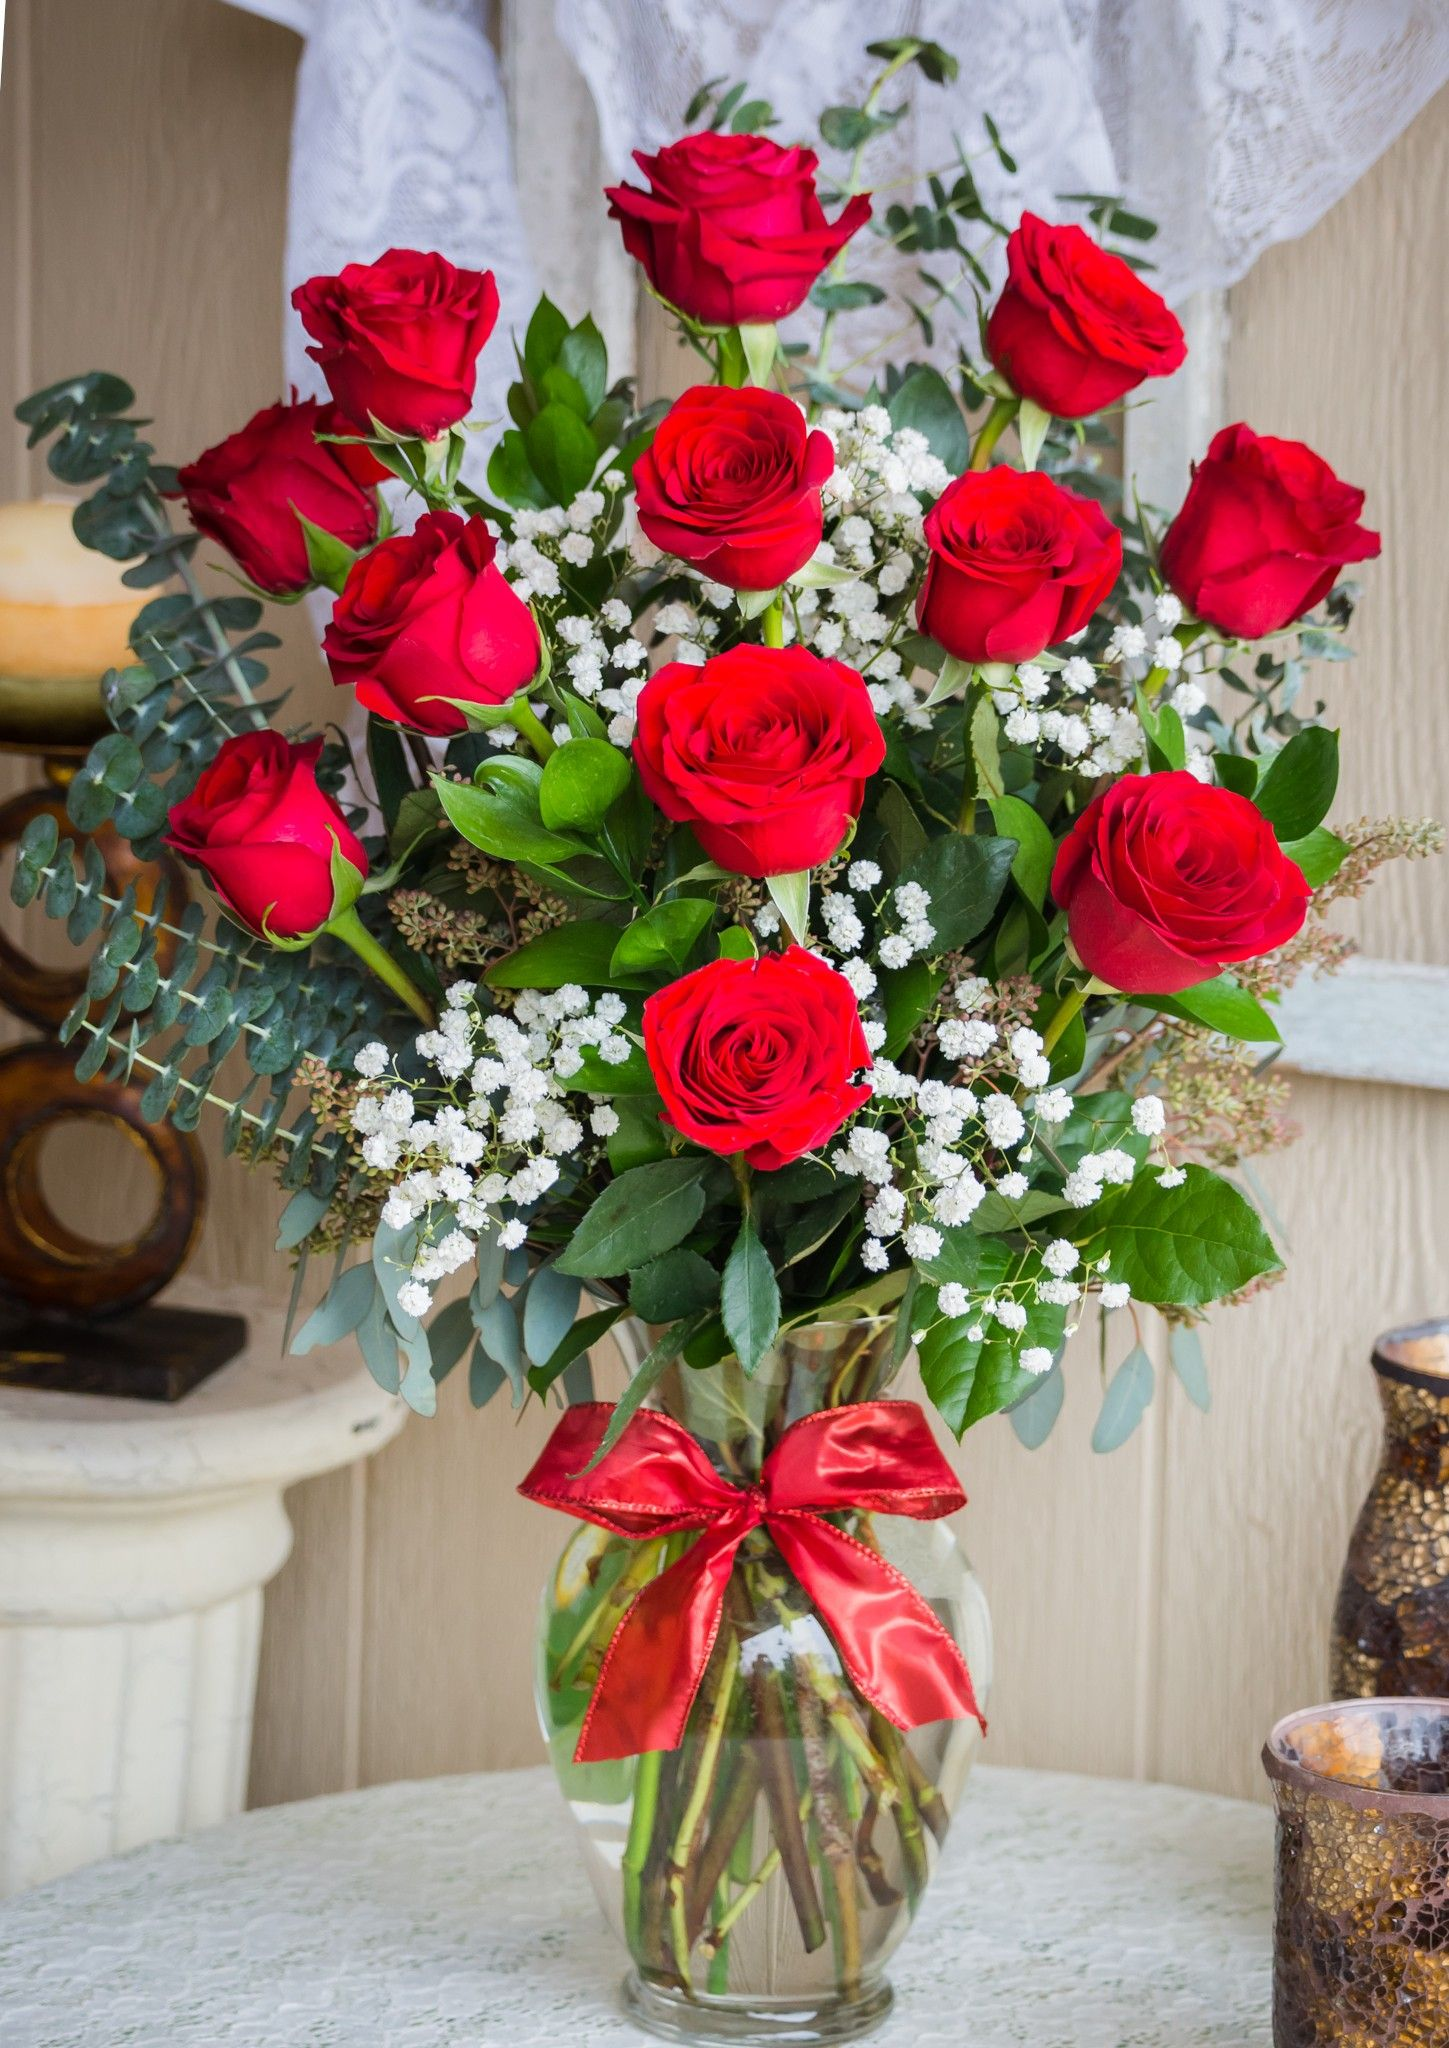 Long stem dozen roses red flower arrangements pinterest sweetheart i love the beautiful roses you brought me last night i thank you again baby for thiinking about me in a sweet and caring way and your lovely izmirmasajfo